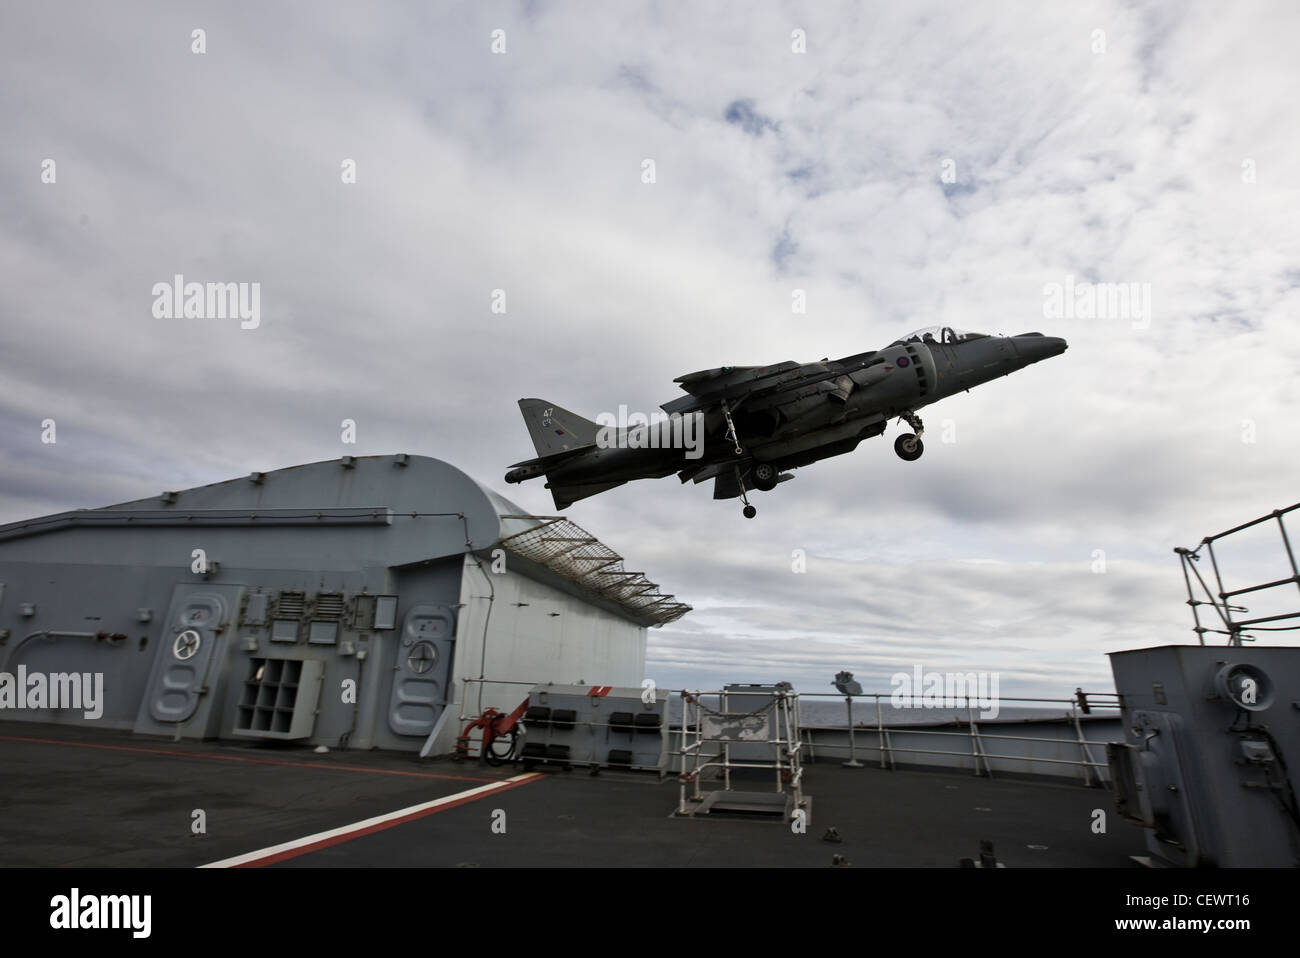 Harrier jet taking off from naval aircraft carrier HMS Illustrius - Stock Image